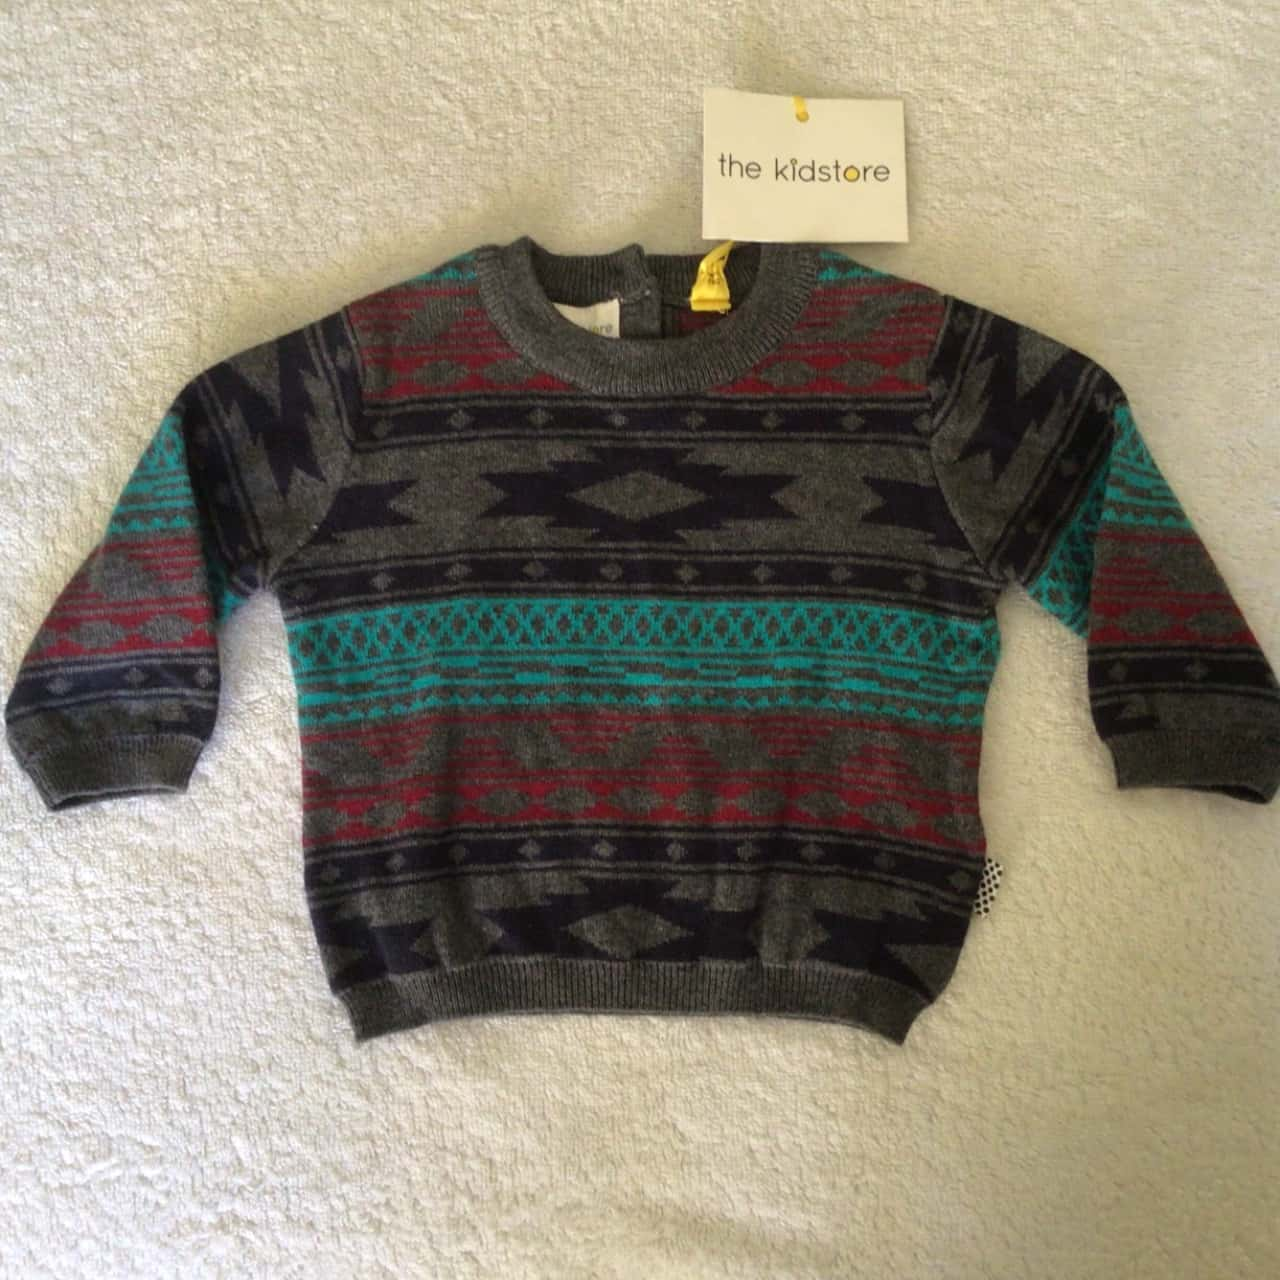 BNWT THE KIDS STORE KNITTED JUMPER  Size 3-6m Grey/ Green / Red / Black